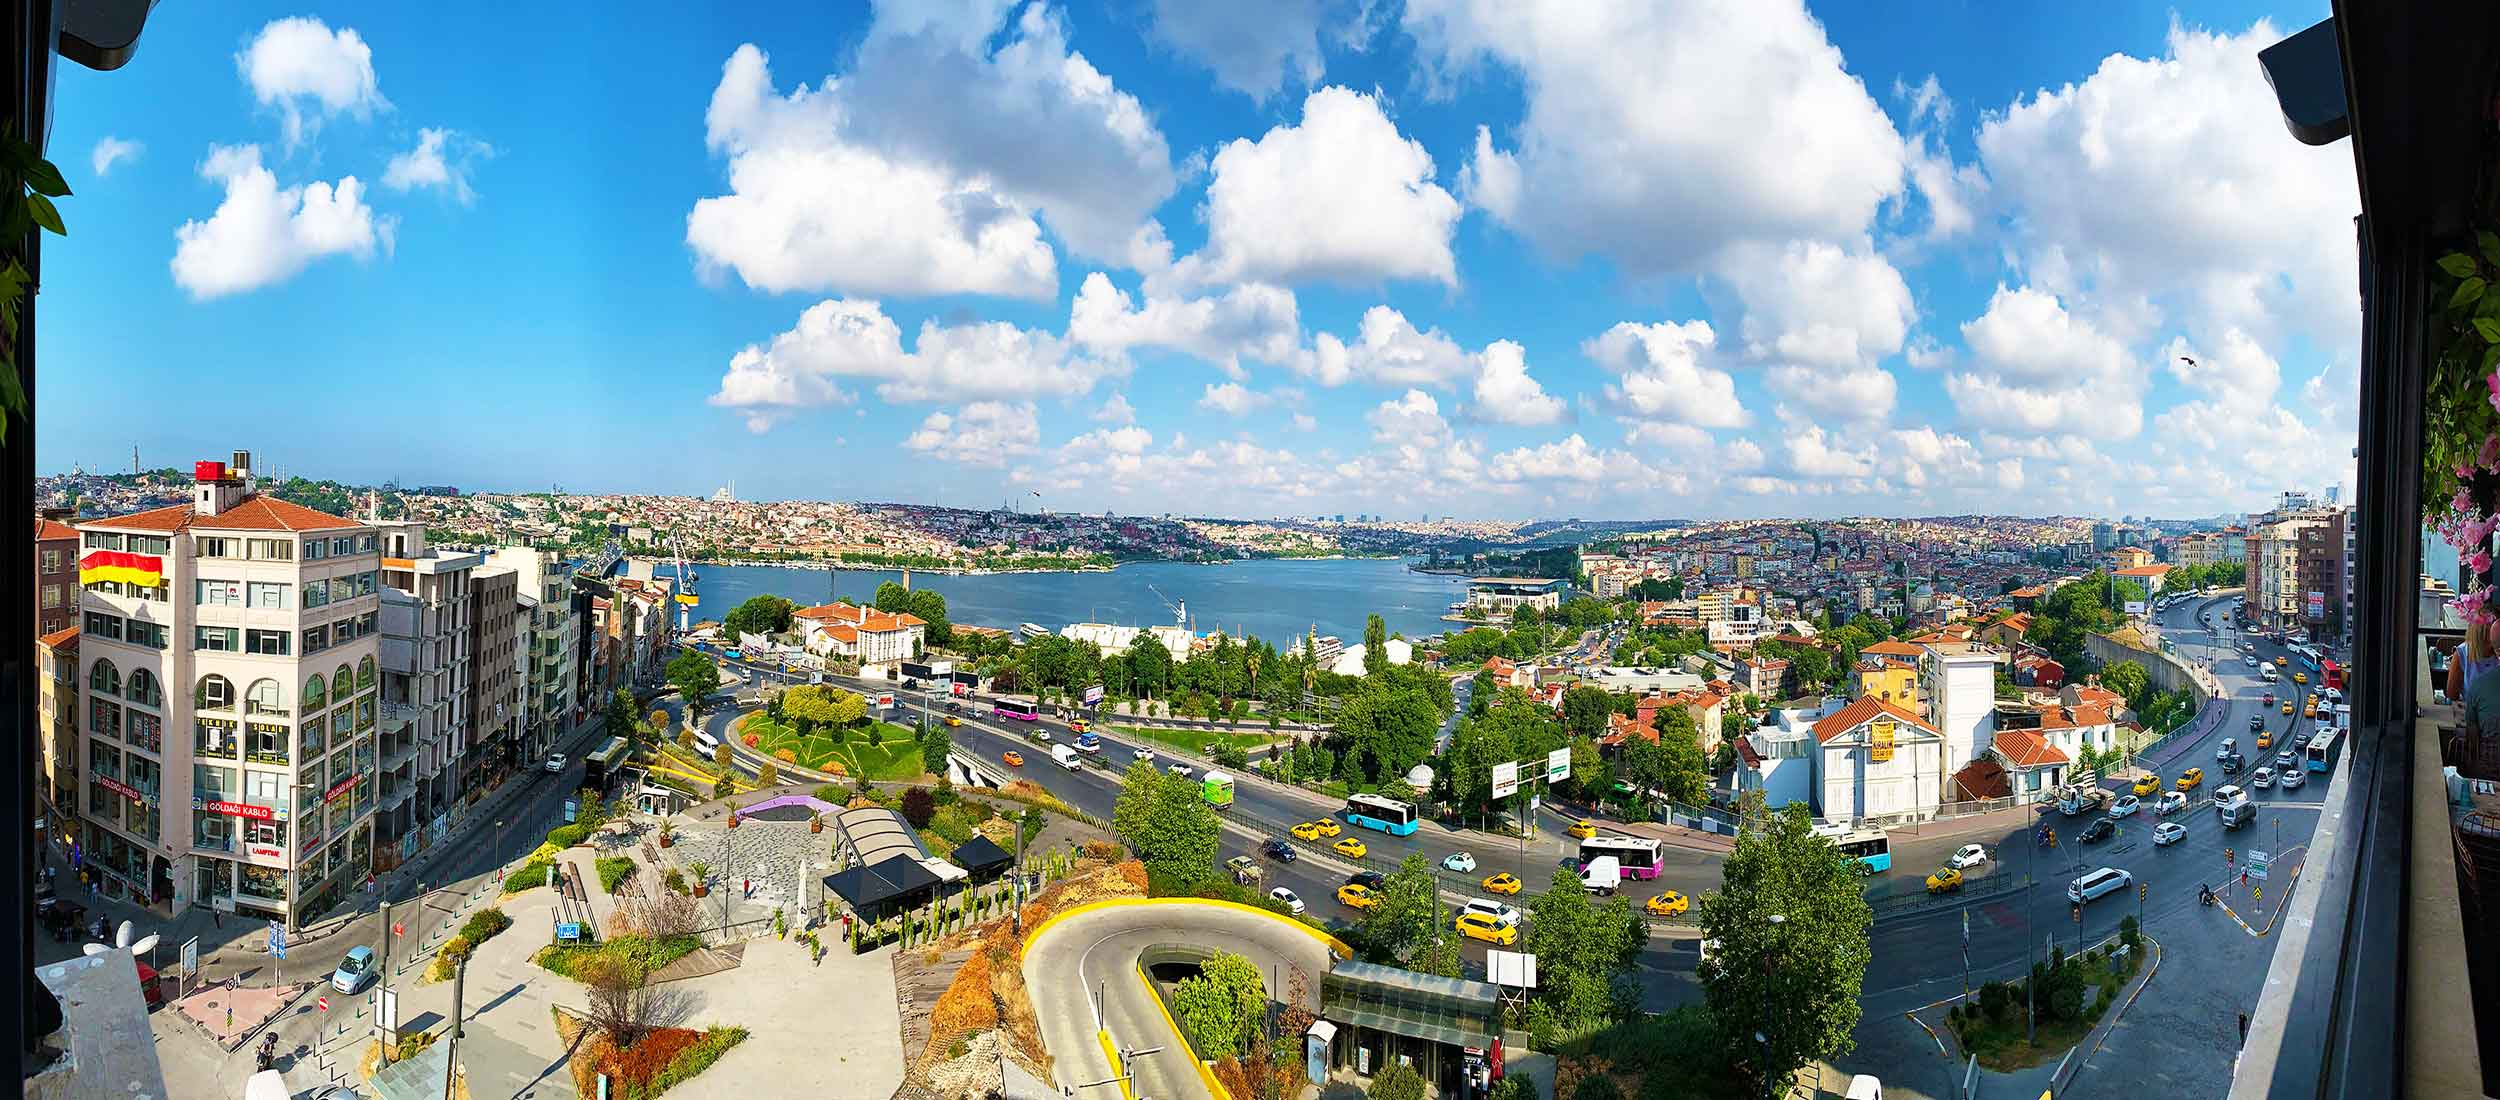 Istanbul Turkey | iPhone X panorama of the Golden Horn from the Daru Sultan Hotel Galata | Photo by Dr Steven Andrew Martin